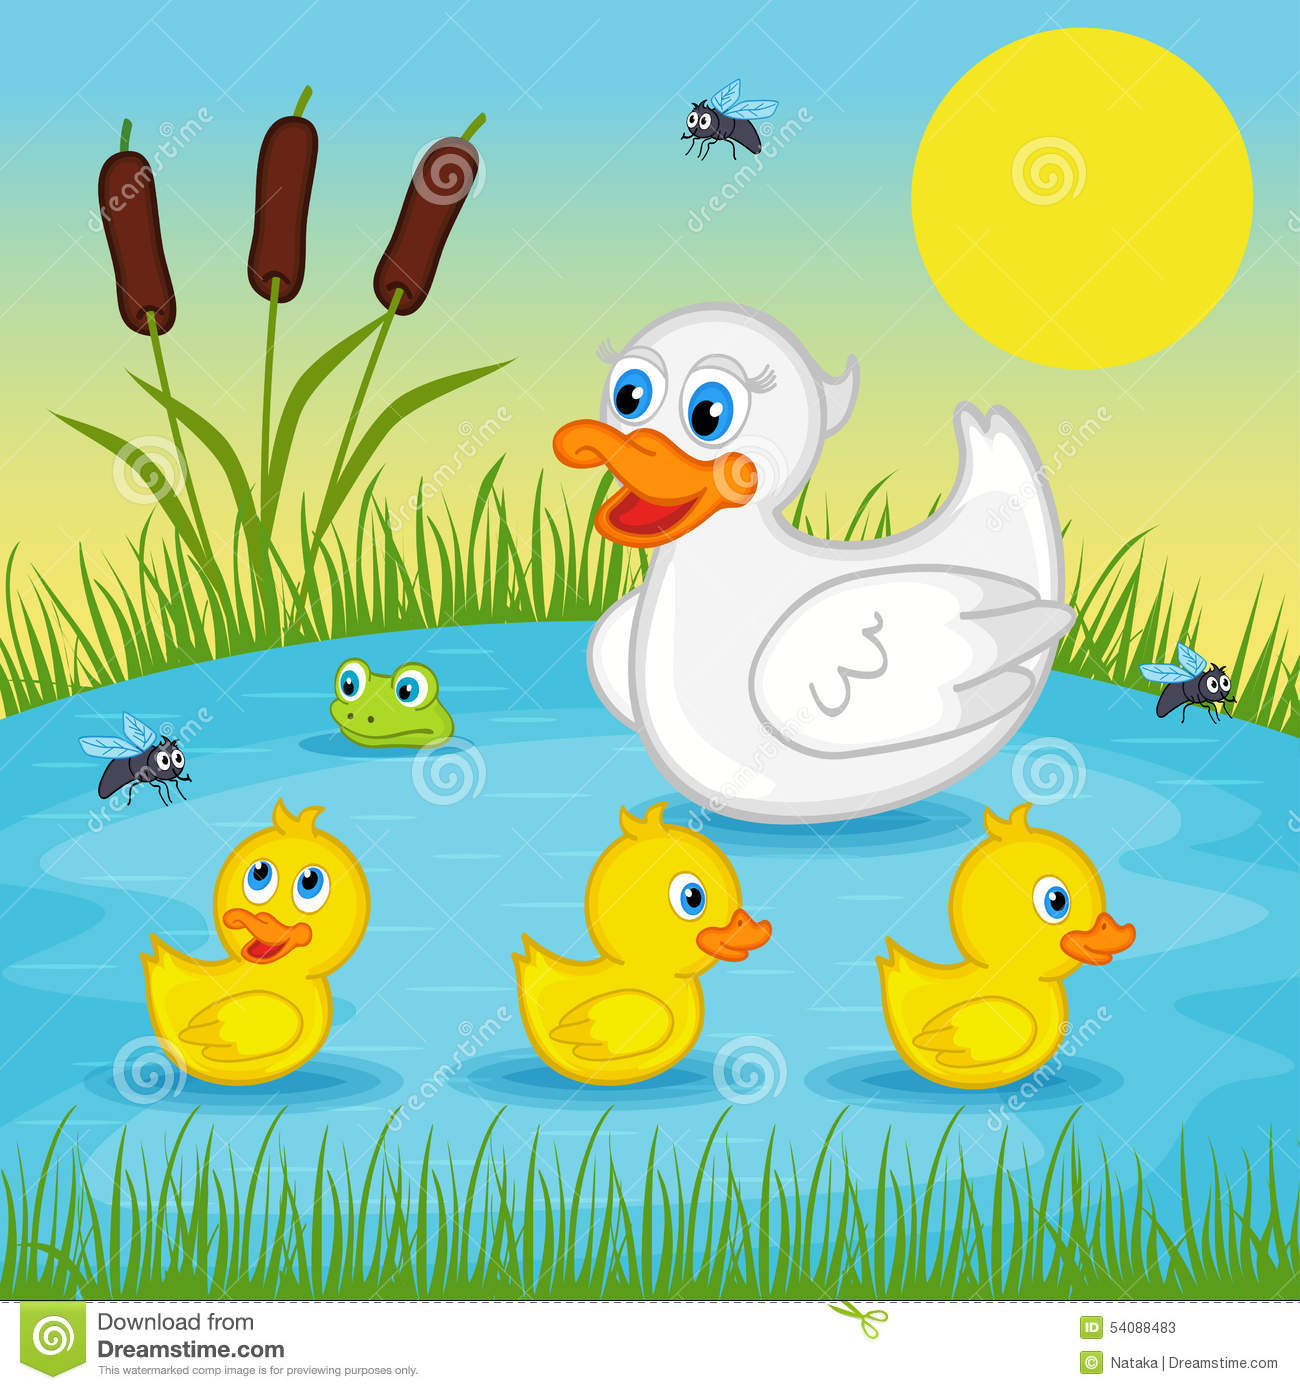 Mother Duck With Ducklings On Lake Stock Vector - Illustration of ... for Duck And Duckling Clipart  104xkb